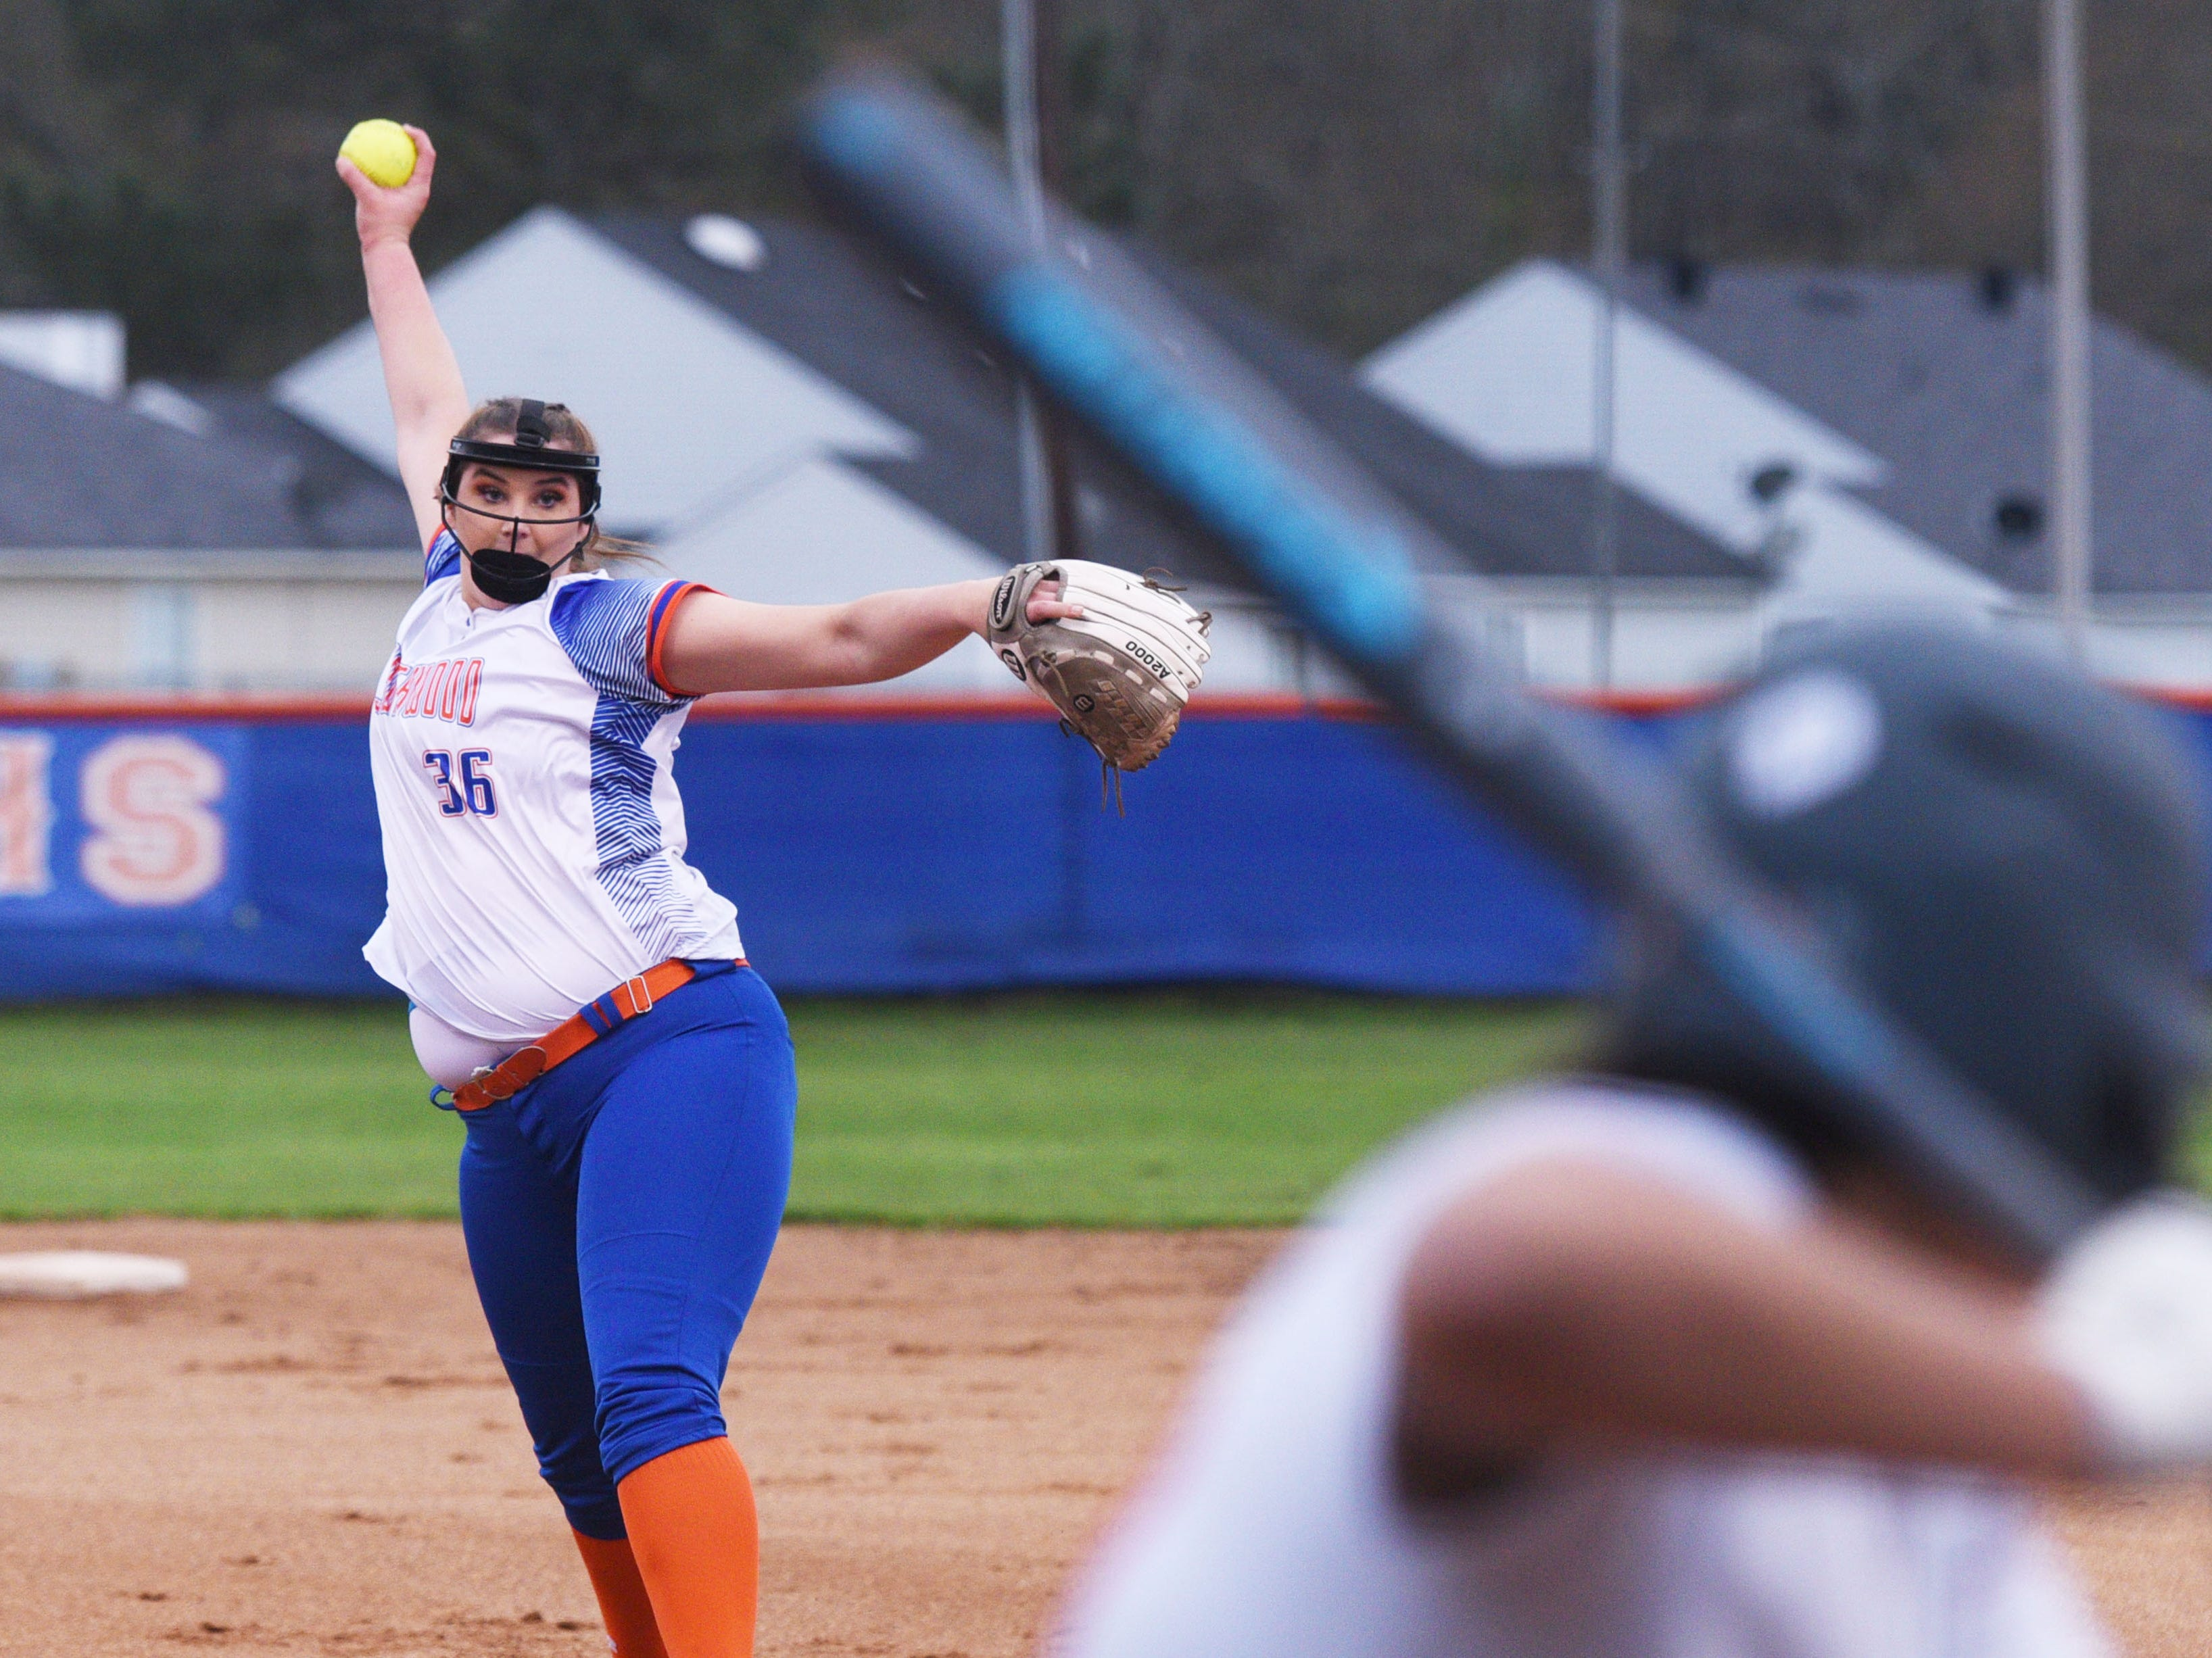 Southwood vs. Haughton in a District 1-5A softball game, Tuesday March 12, 2019 at Southwood High School.